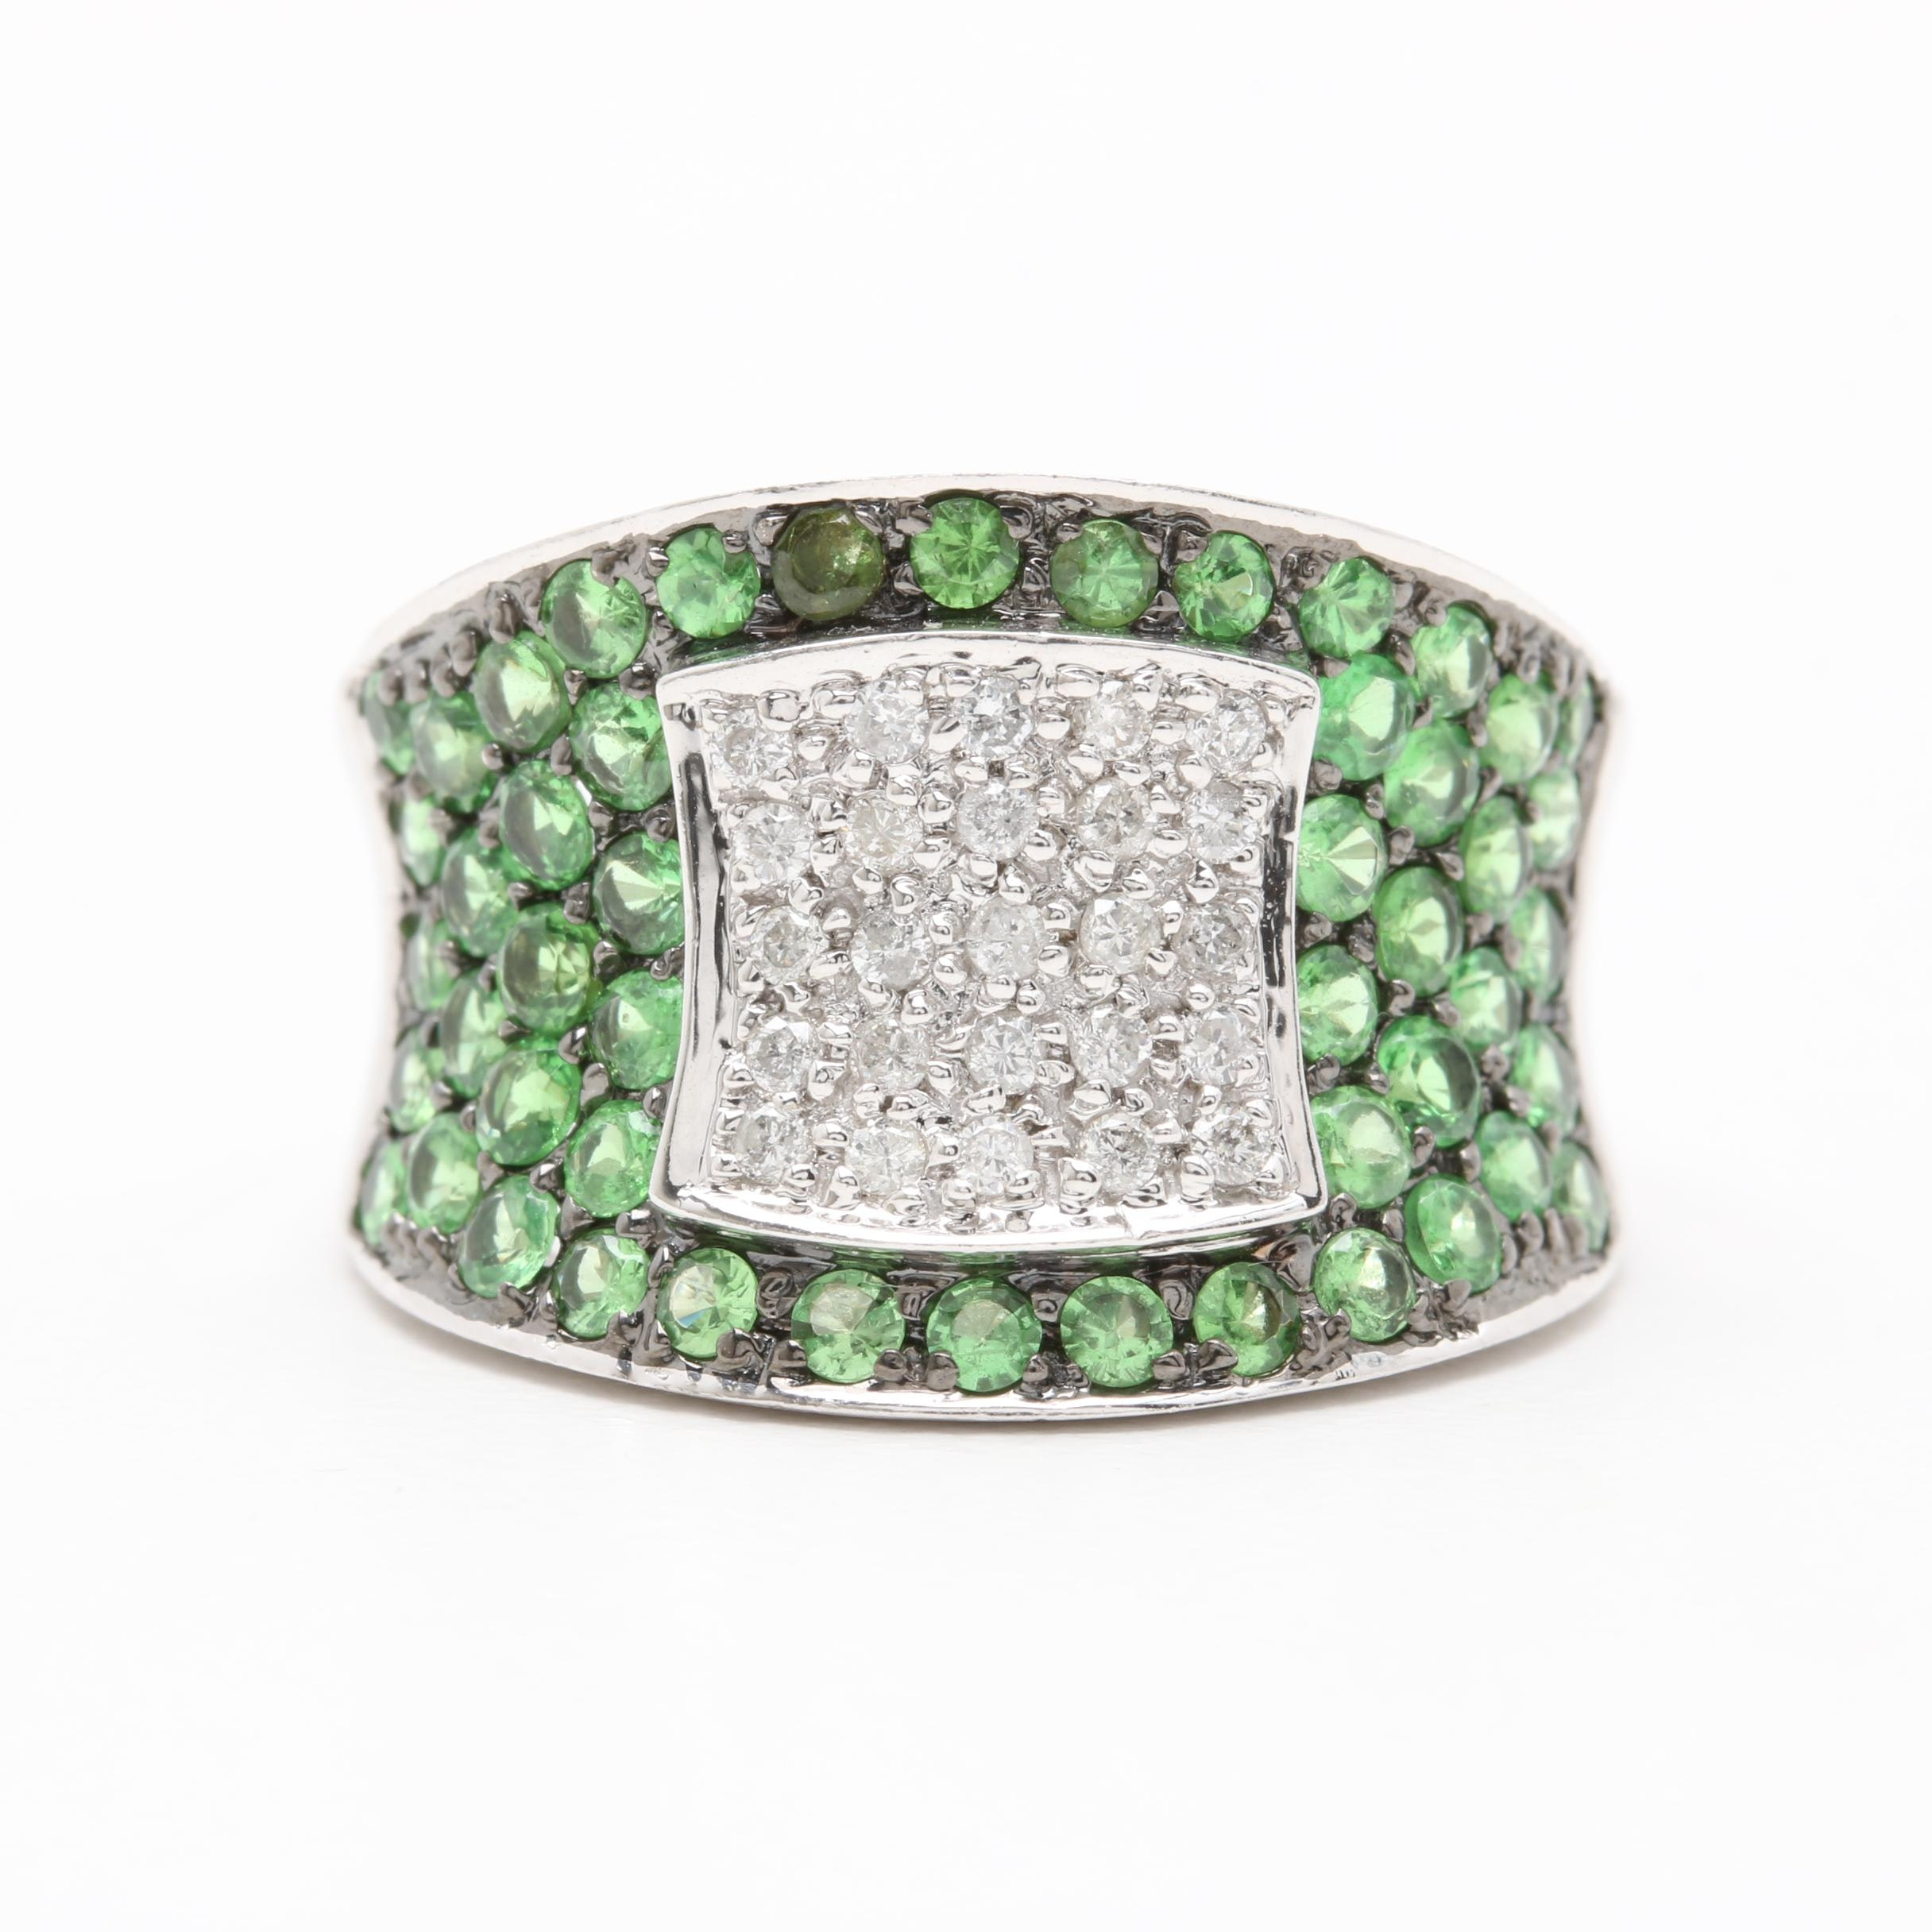 14K White Gold Diamond and Tsavorite Ring